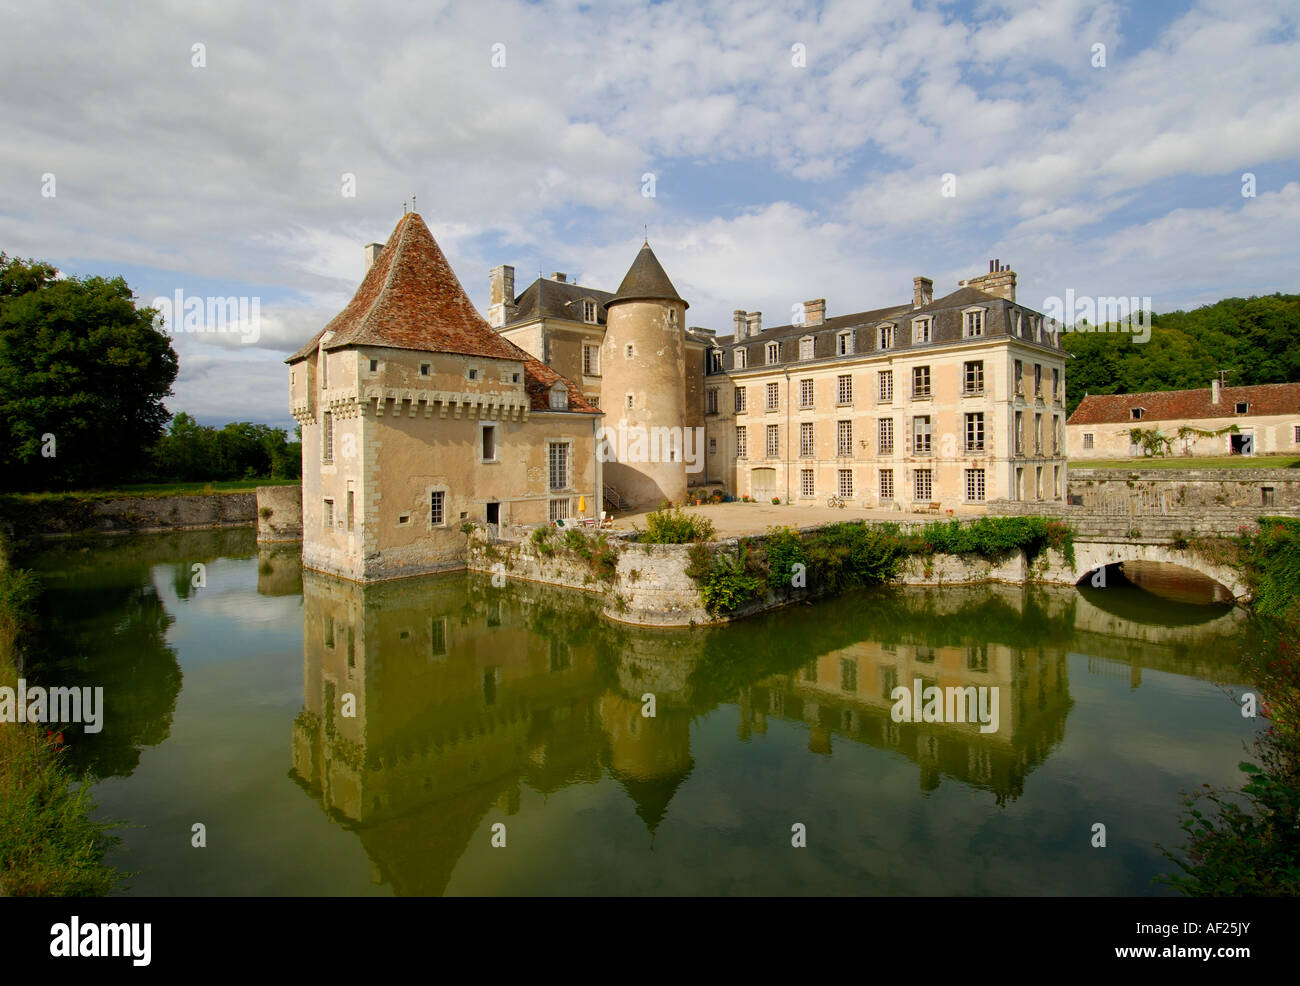 moated chateau of boussay indre et loire france stock photo royalty free image 13806578 alamy. Black Bedroom Furniture Sets. Home Design Ideas